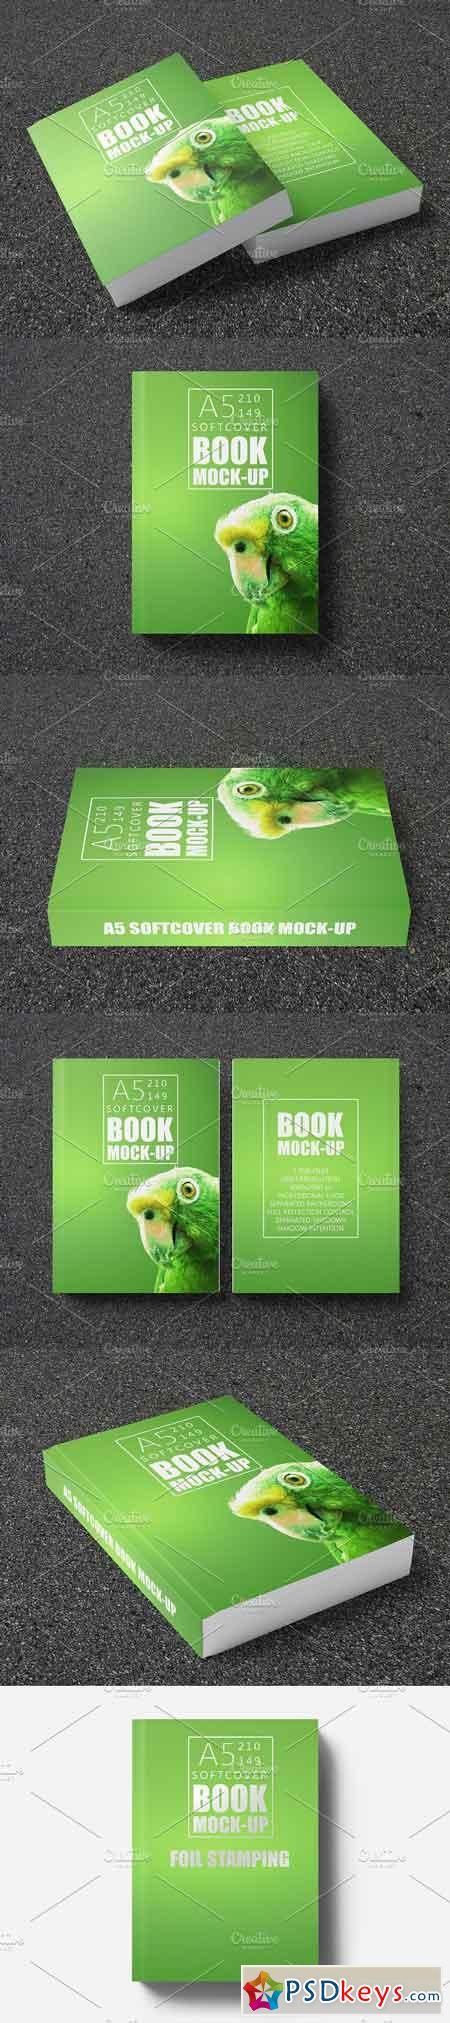 Vintage Soft Cover Book Mock Up : Book mock up a soft cover free download